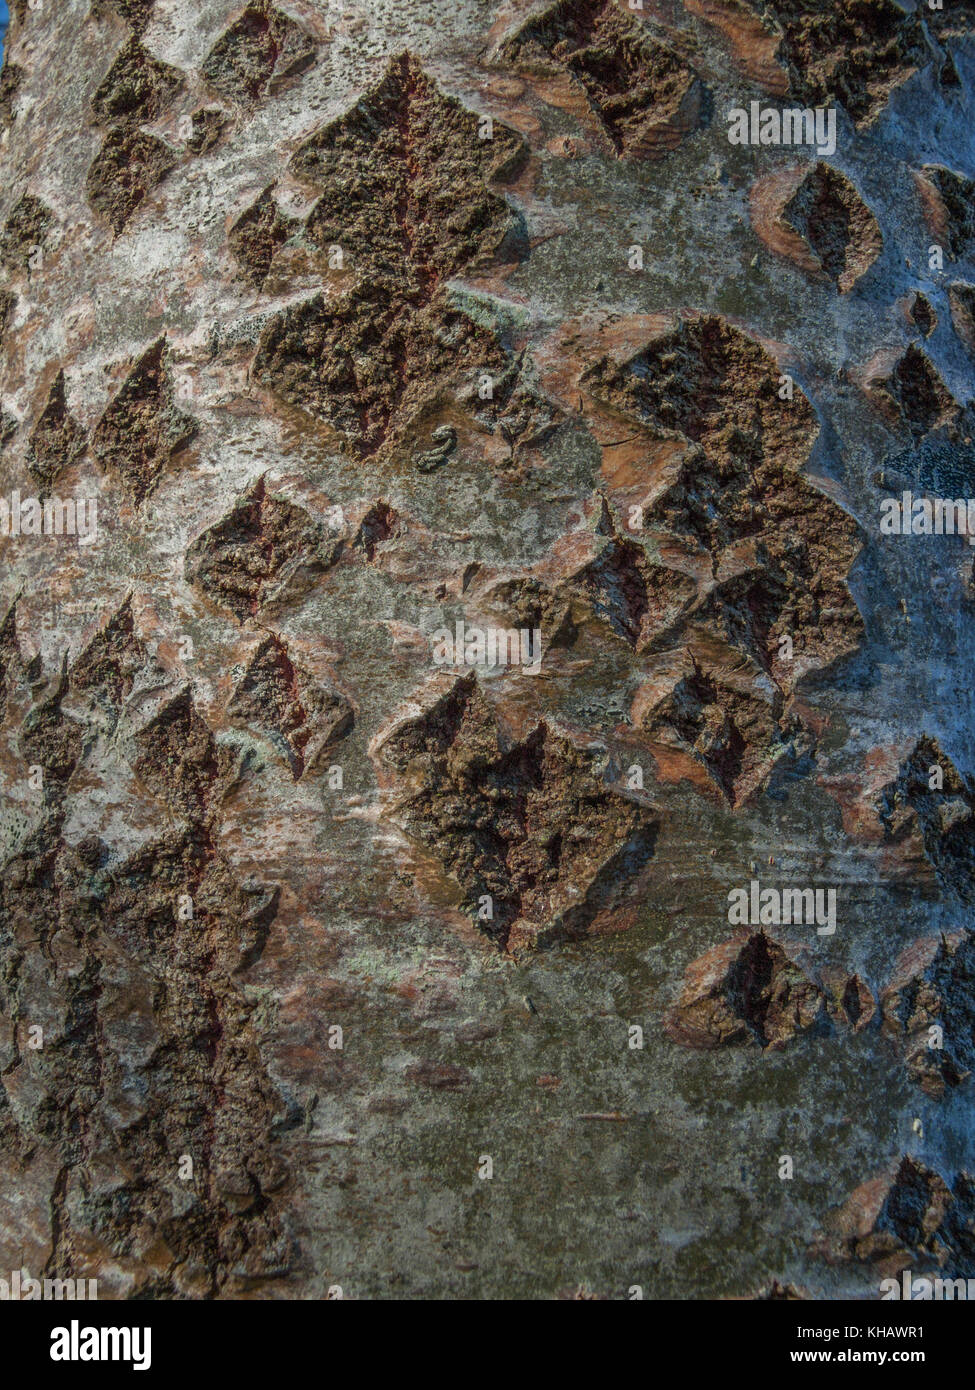 Close-up of White Poplar (Populus alba) bark with somewhat diamong-shaped pores. - Stock Image